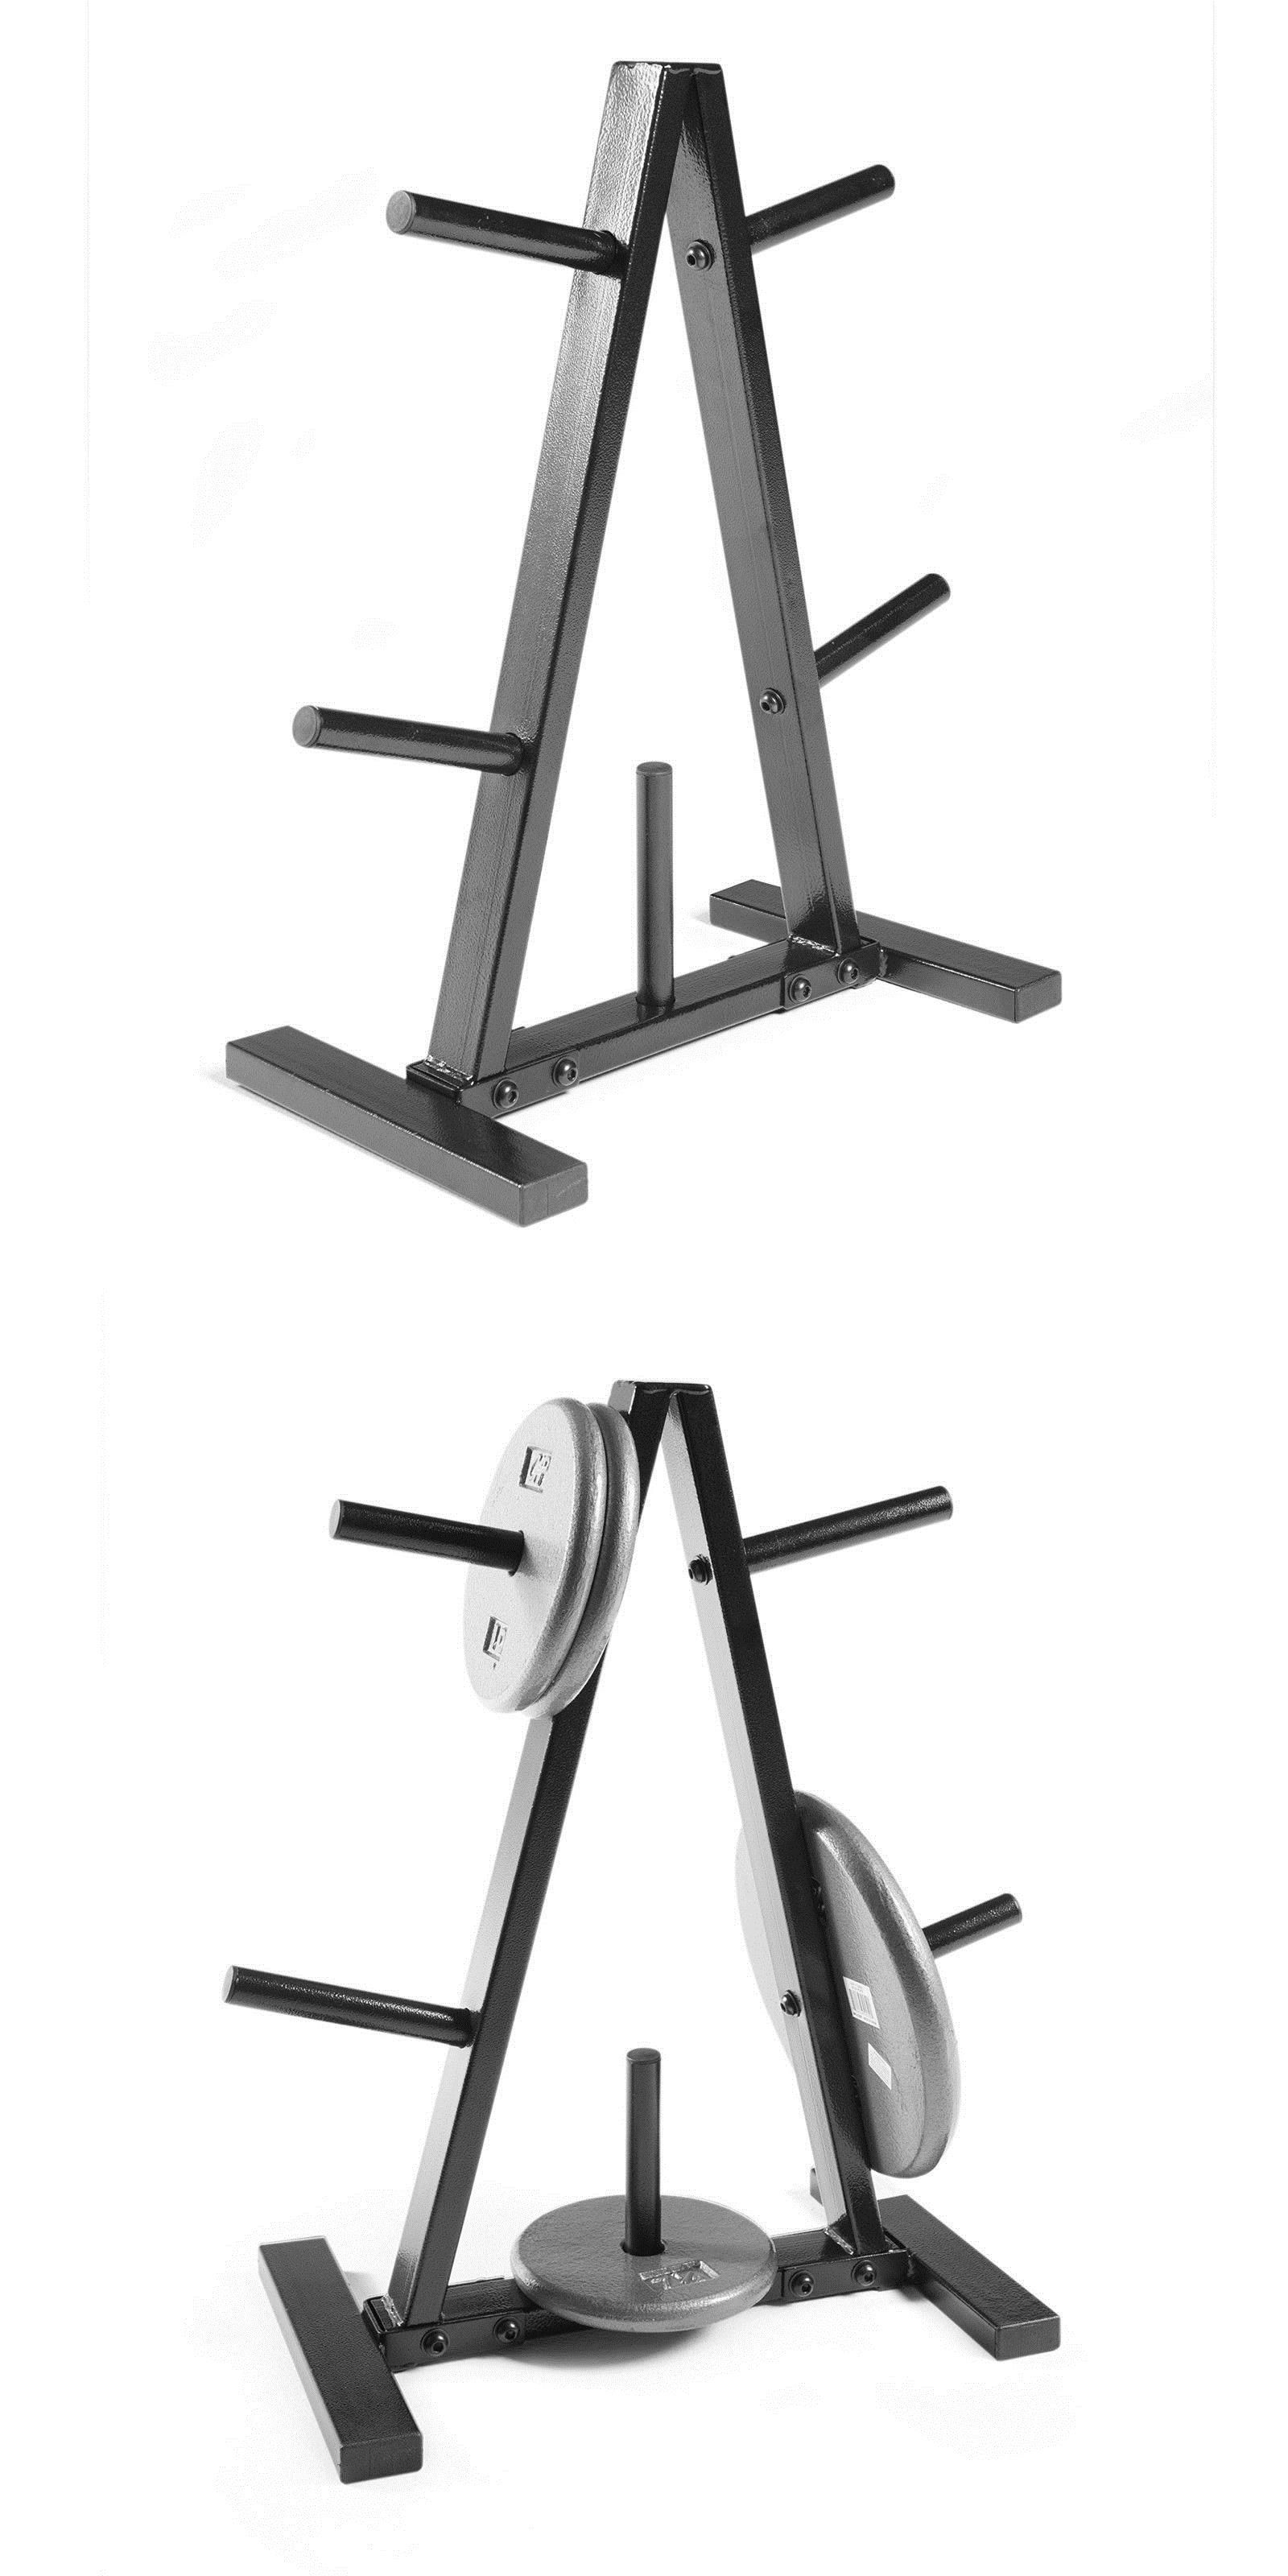 gym equipment stand commercial xm with dumbbell storage rack p bag heavy racks x lifting platform weight mark speed